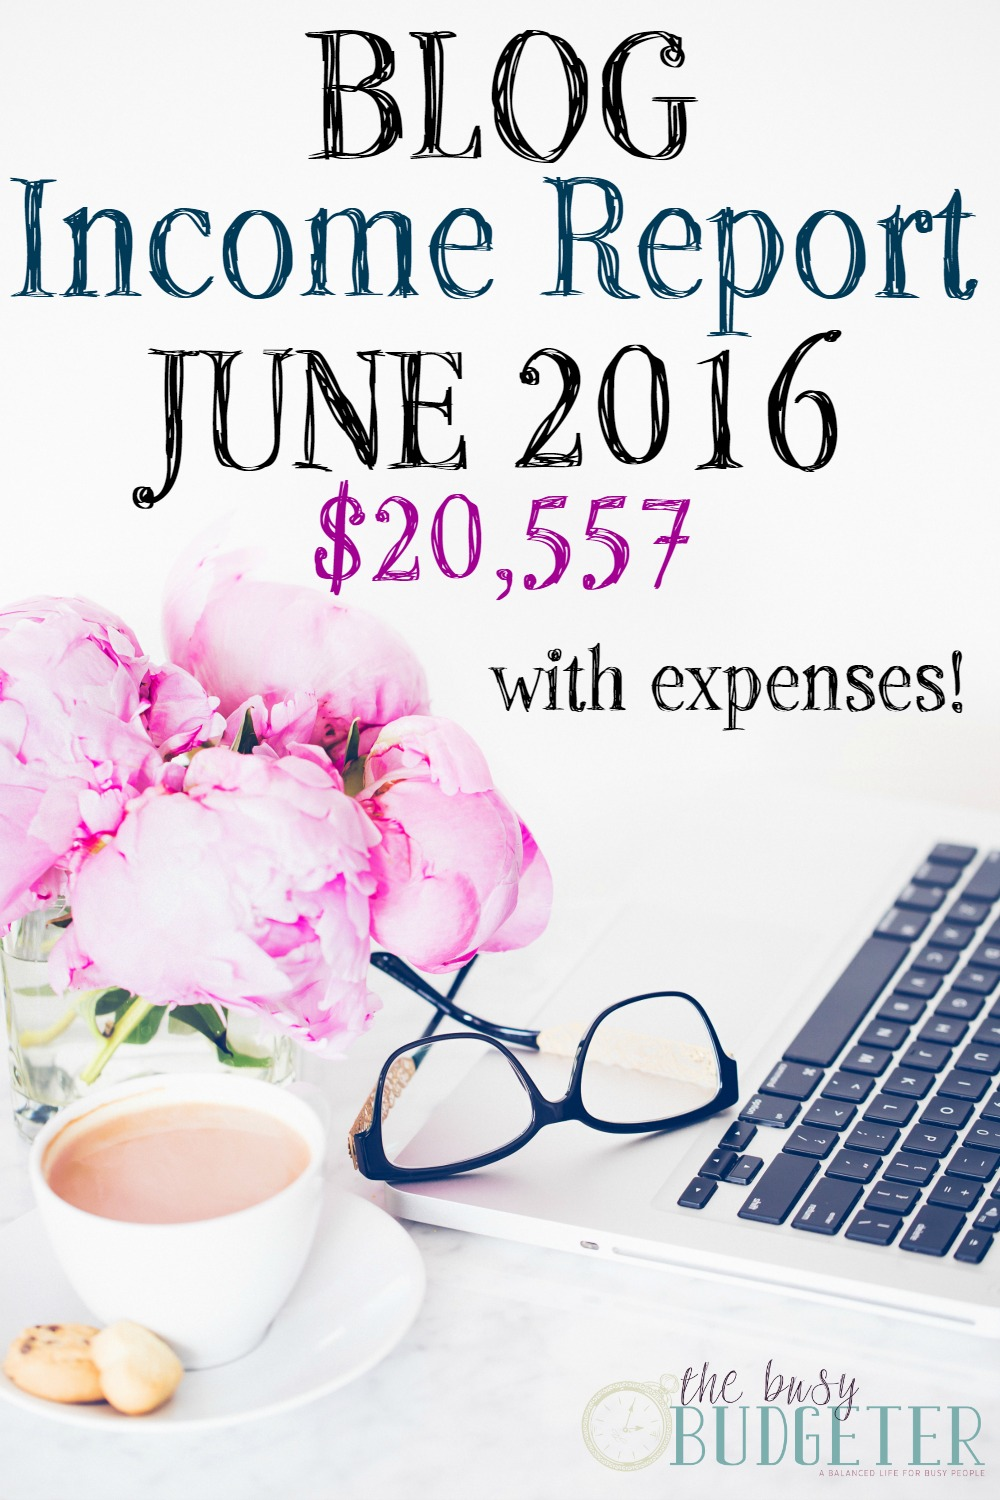 Blog Income Report June 2016- $20,557. I read blogging income reports all the time as a blogger and I've never seen one that spell out her strategy so detailed. The expenses and how she explains her salary are priceless. I make income from blogging, but I struggle with budgeting it since it's up and down every month. This would totally work for me.